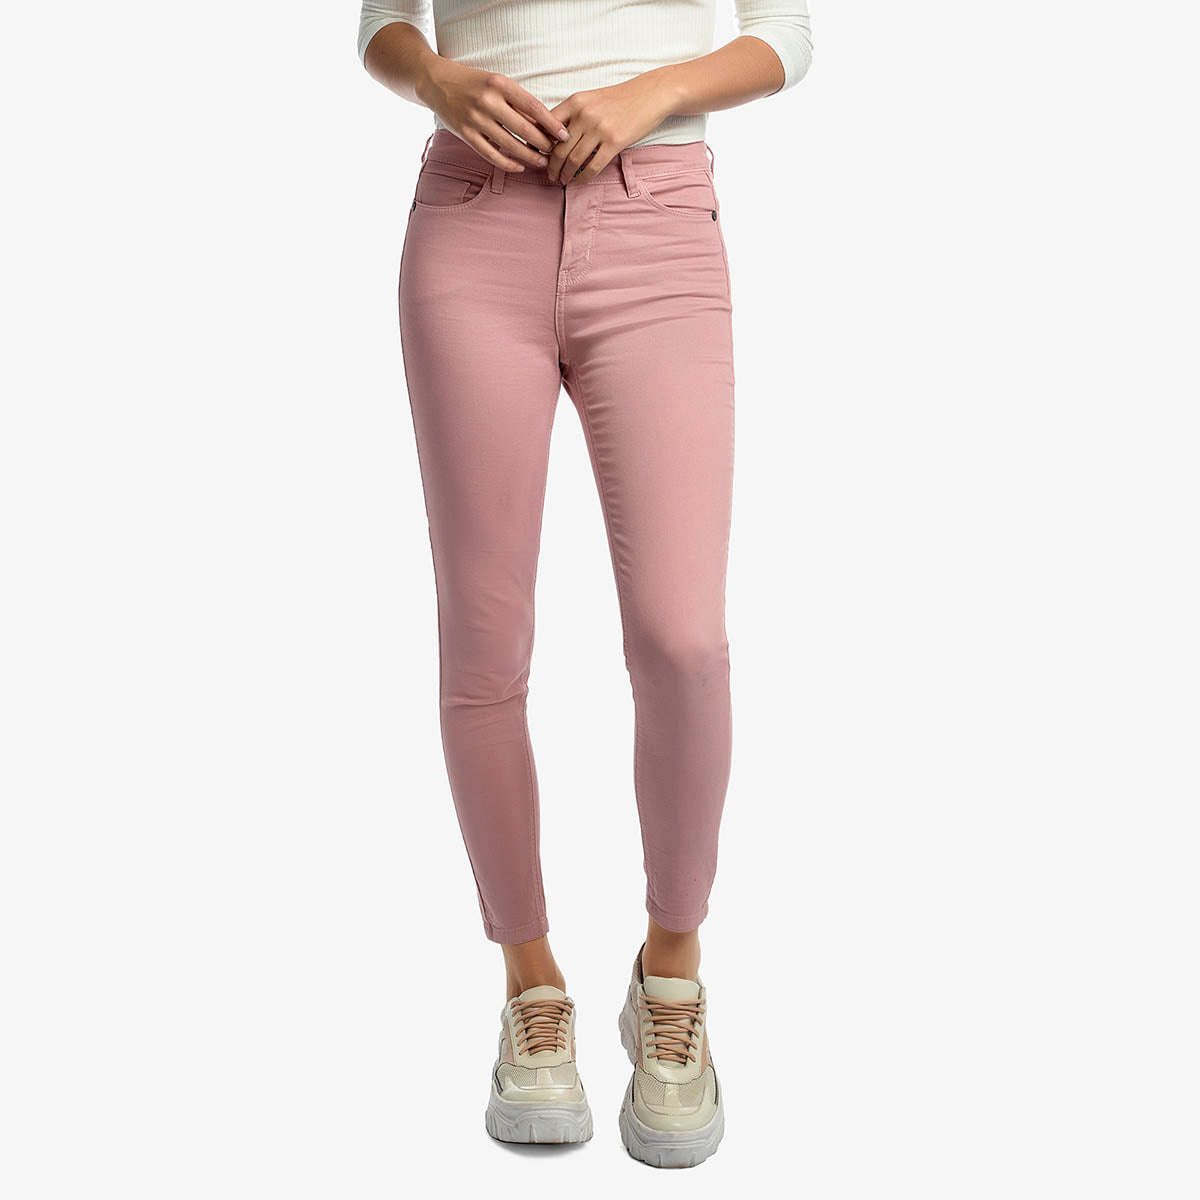 Pantalon Botany Bay Color Palo Rosa - EXIT - SmartBrands